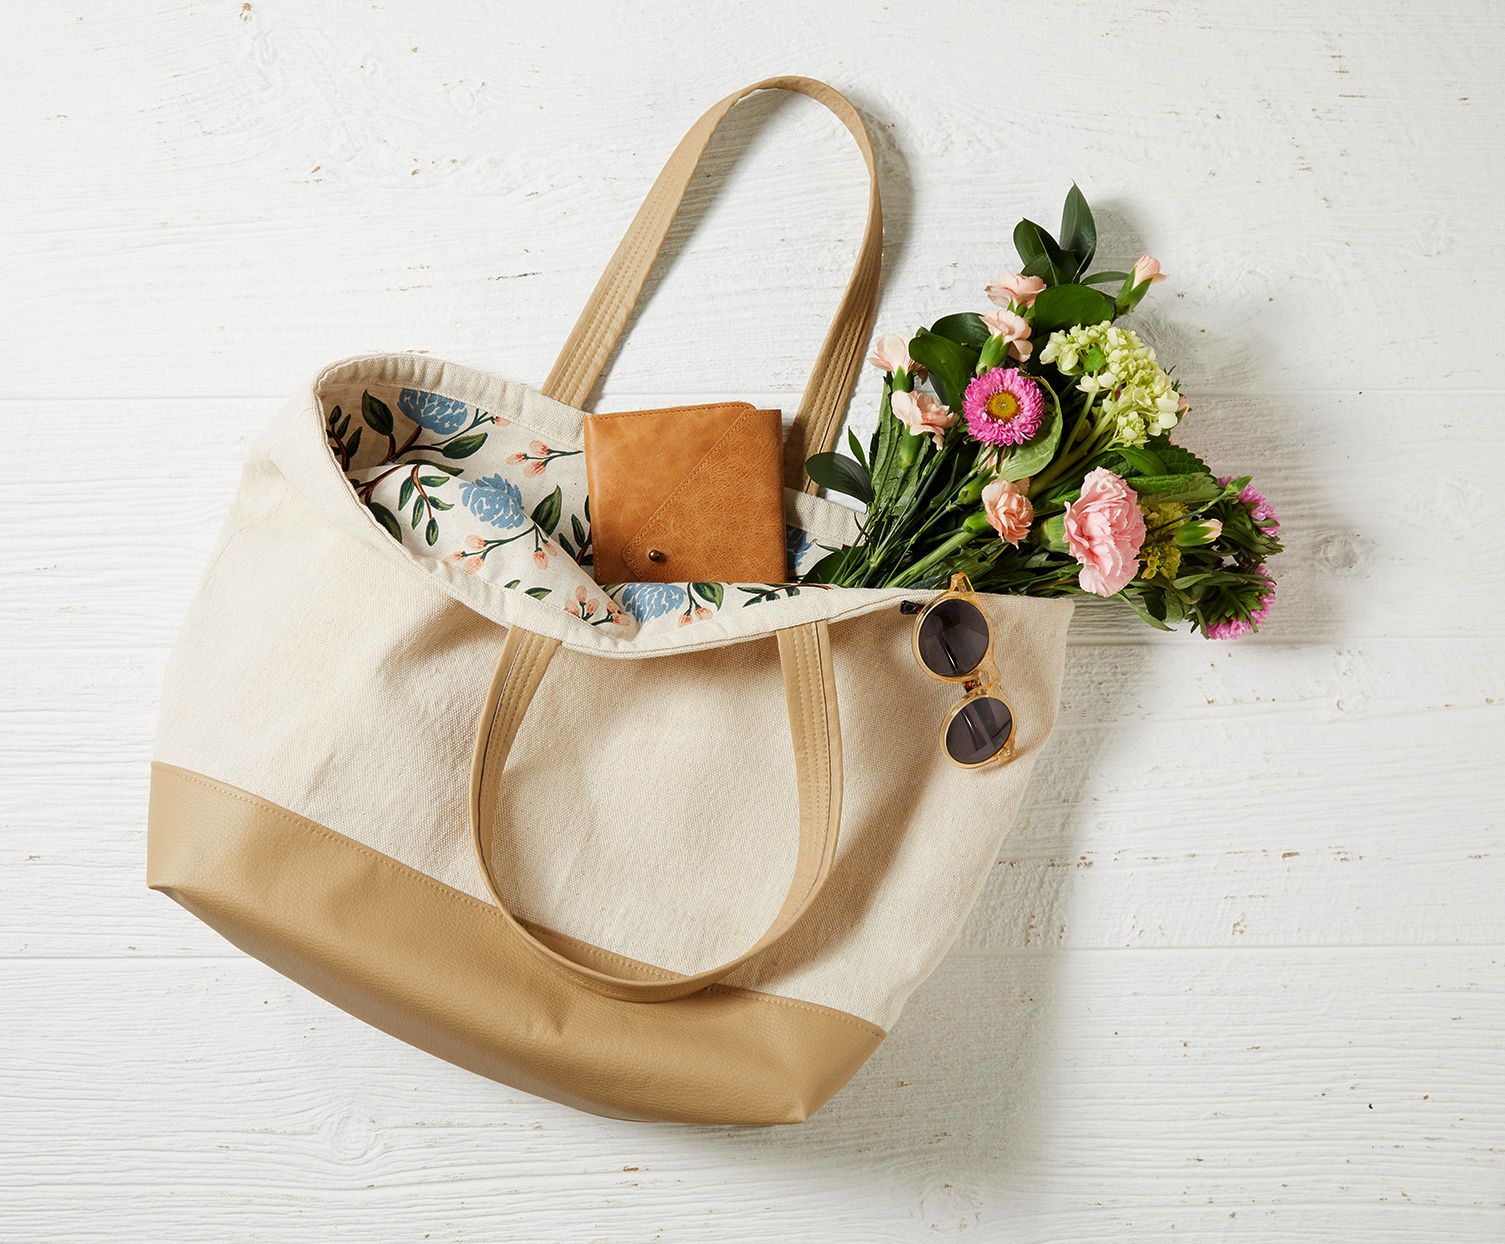 flowers, sunglasses and wallet in beige tote bag